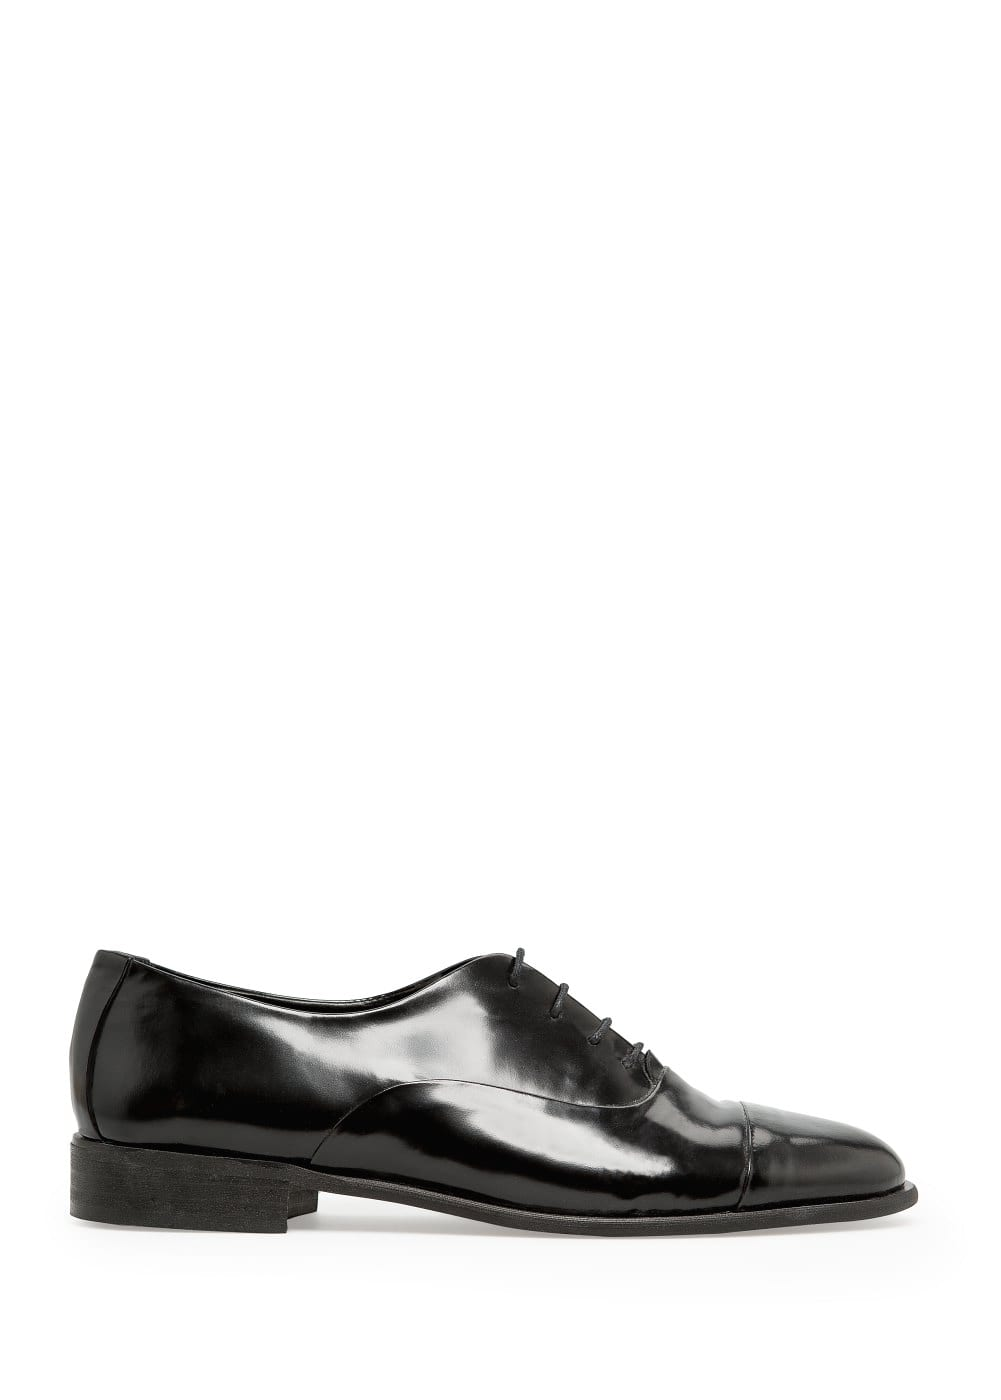 Chaussures Oxford cuir